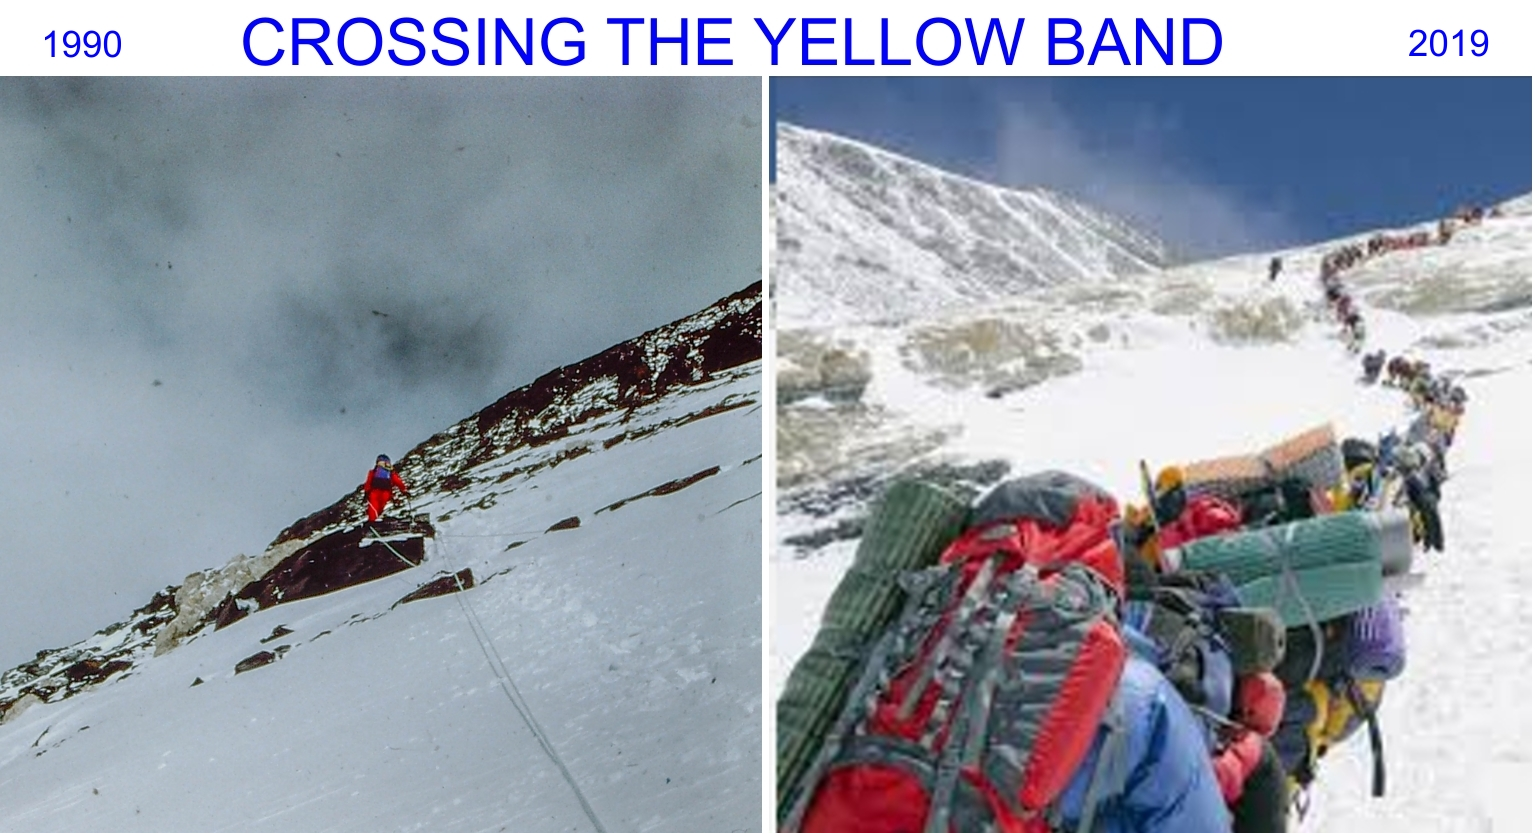 Crossing the Yellow Band